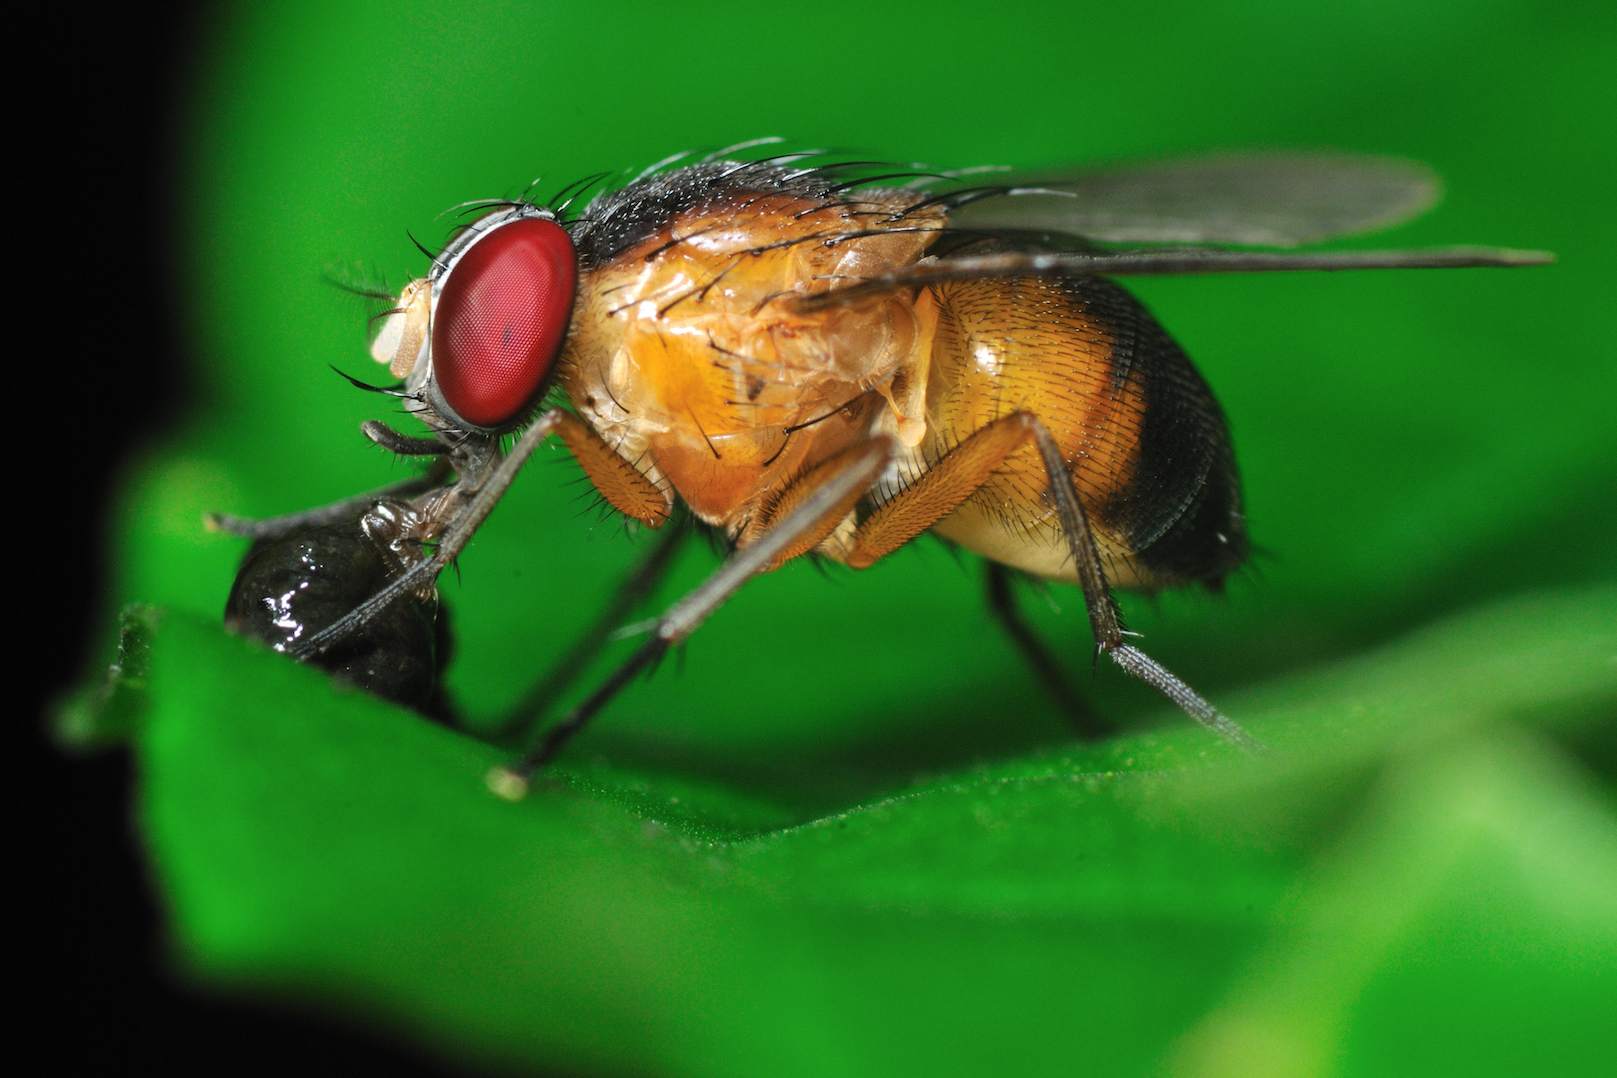 A recent study from the journal Nature Communications has found interesting patterns in how a fruit fly decides to mate or sleep.